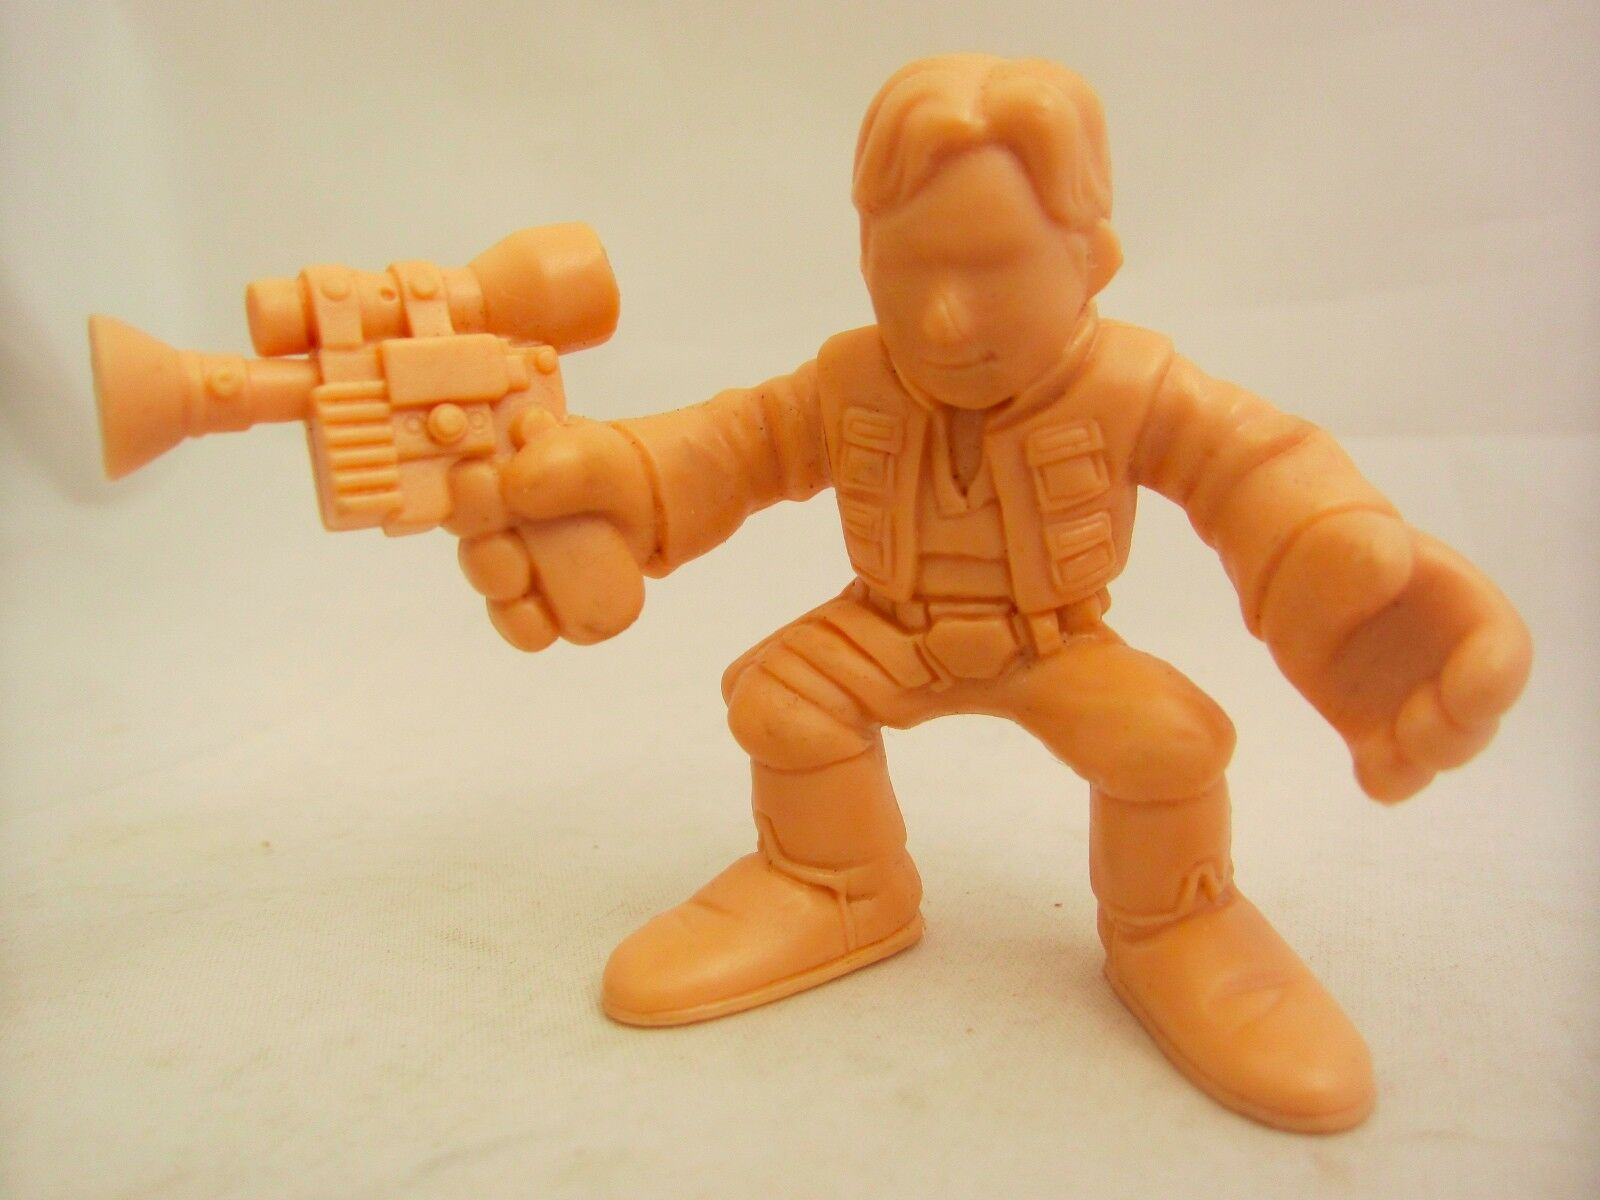 Star Wars Prototype Test Shot Han Solo Figure Galactic Heroes Toy 2.5  Tall 2001